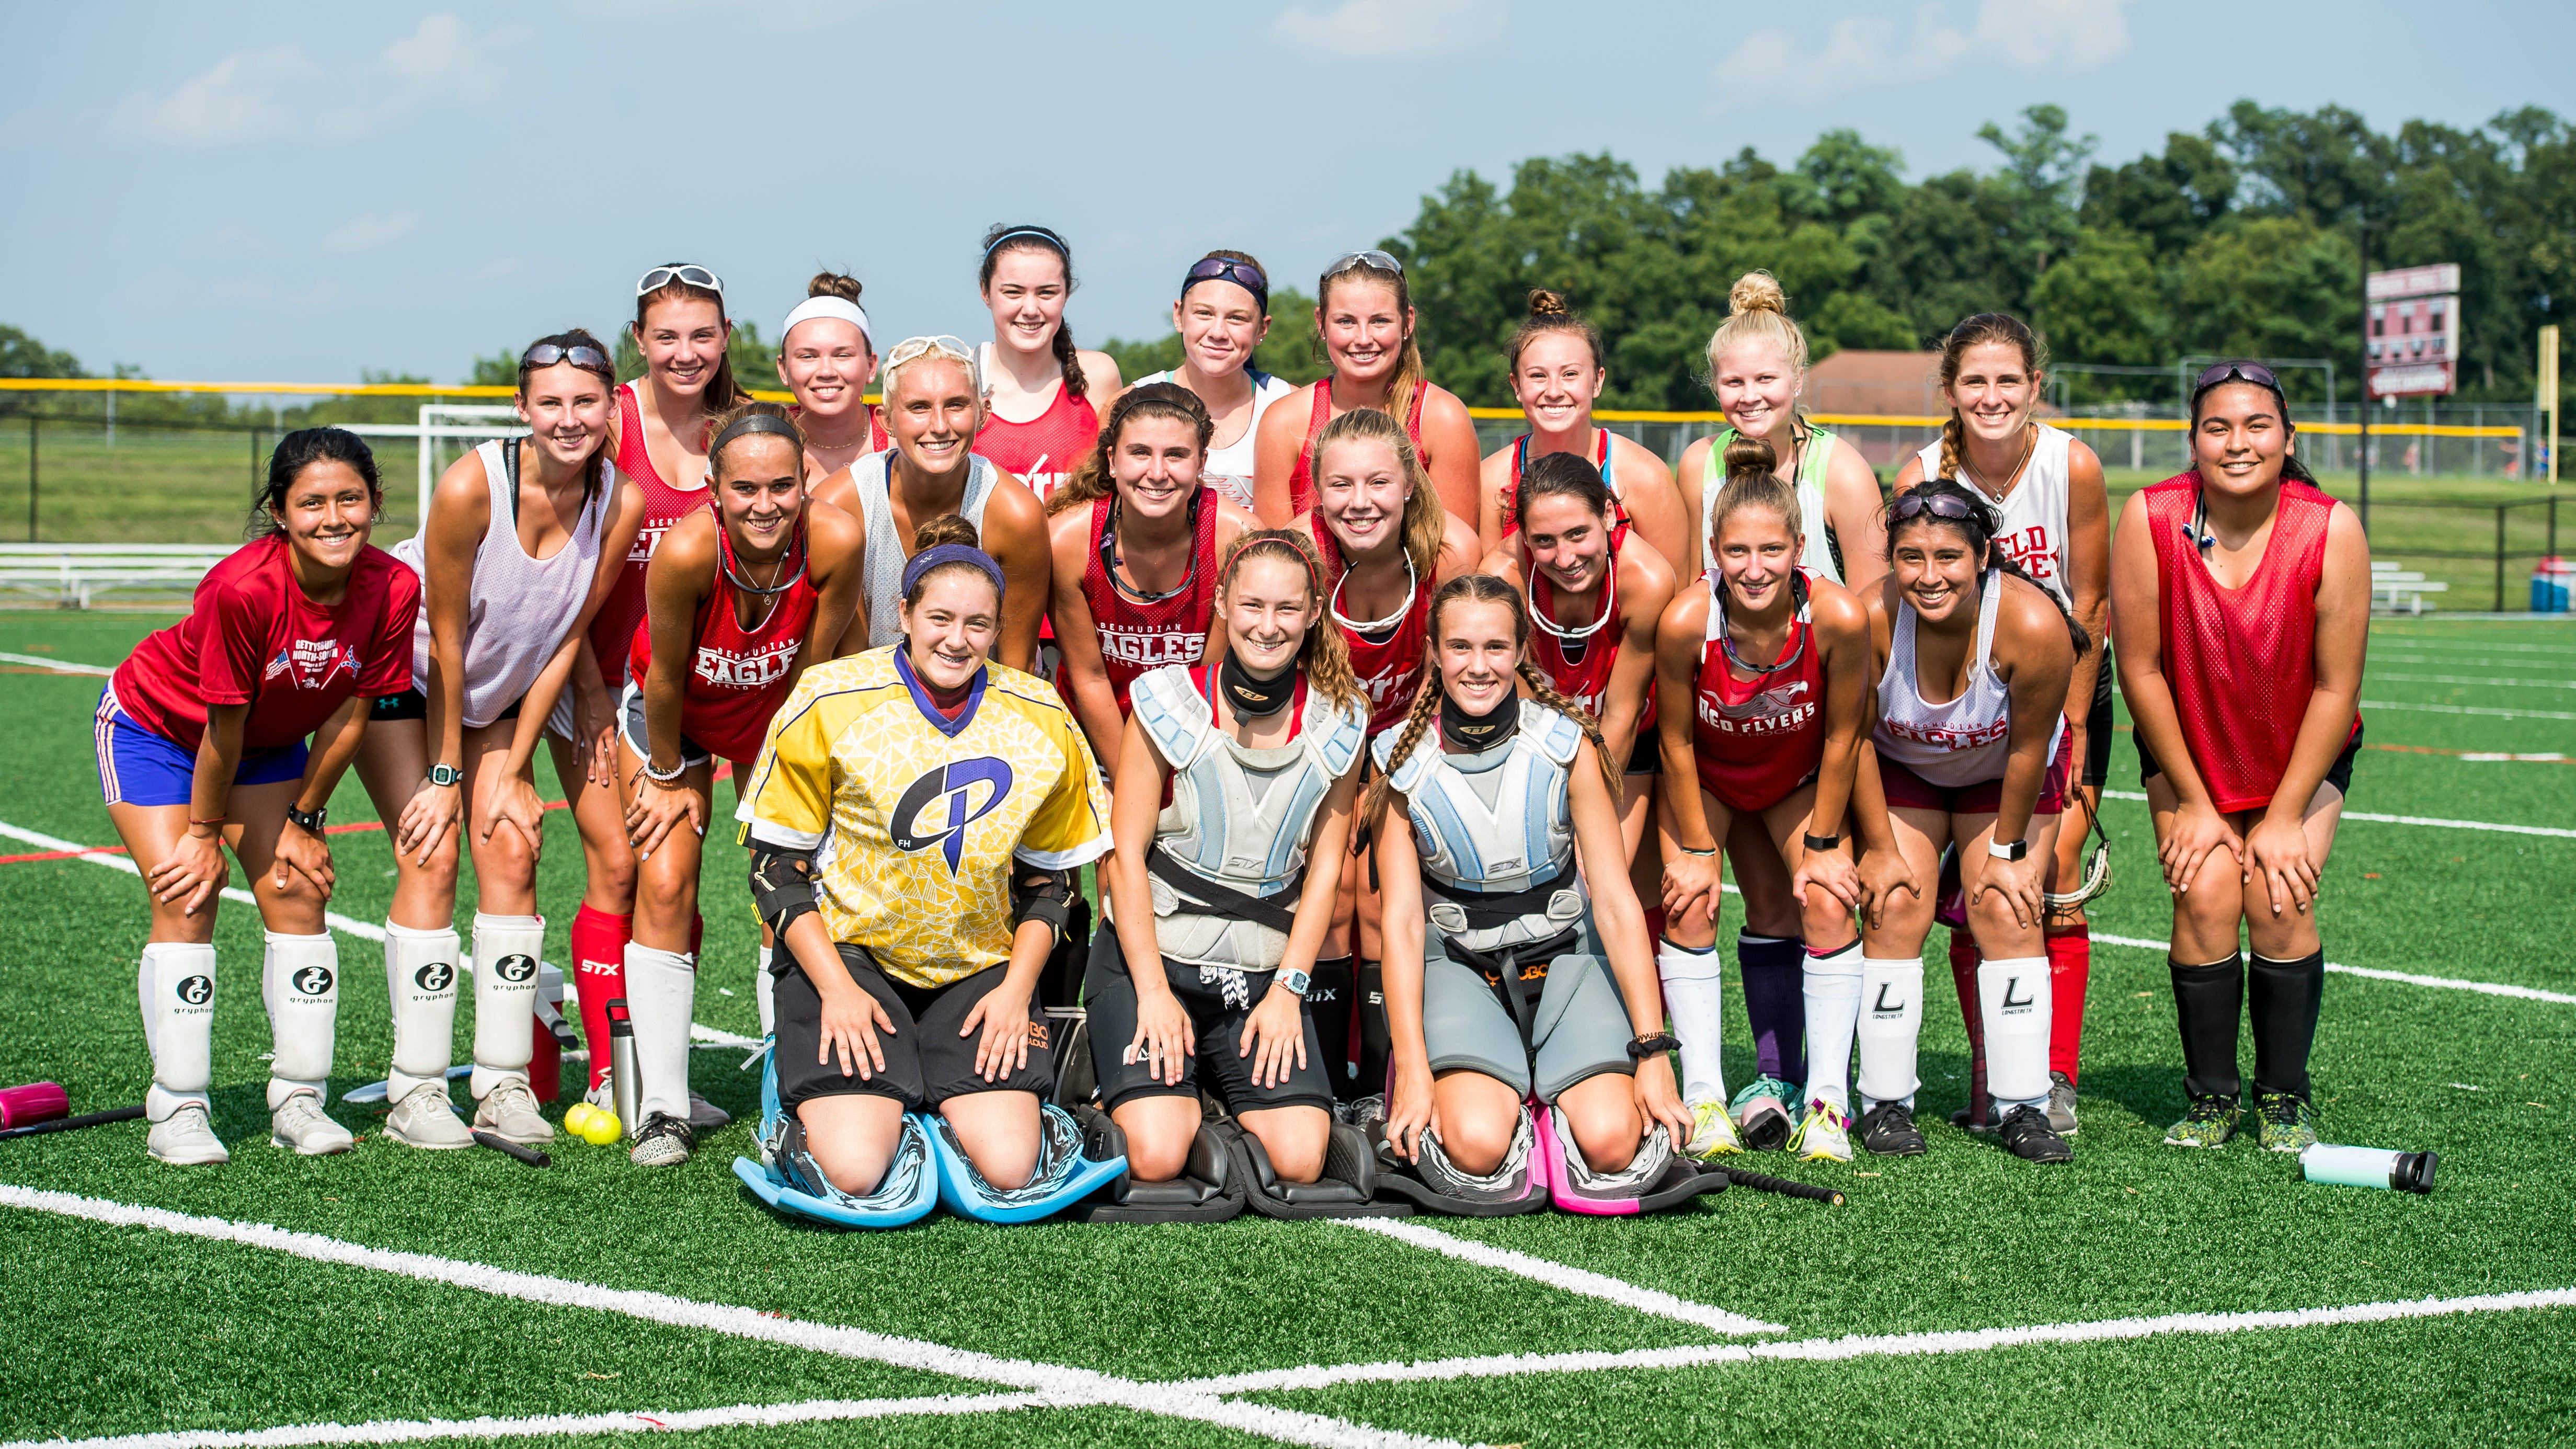 The Bermudian Springs varsity field hockey team pose for a photo during practice on Thursday, August 16, 2018.